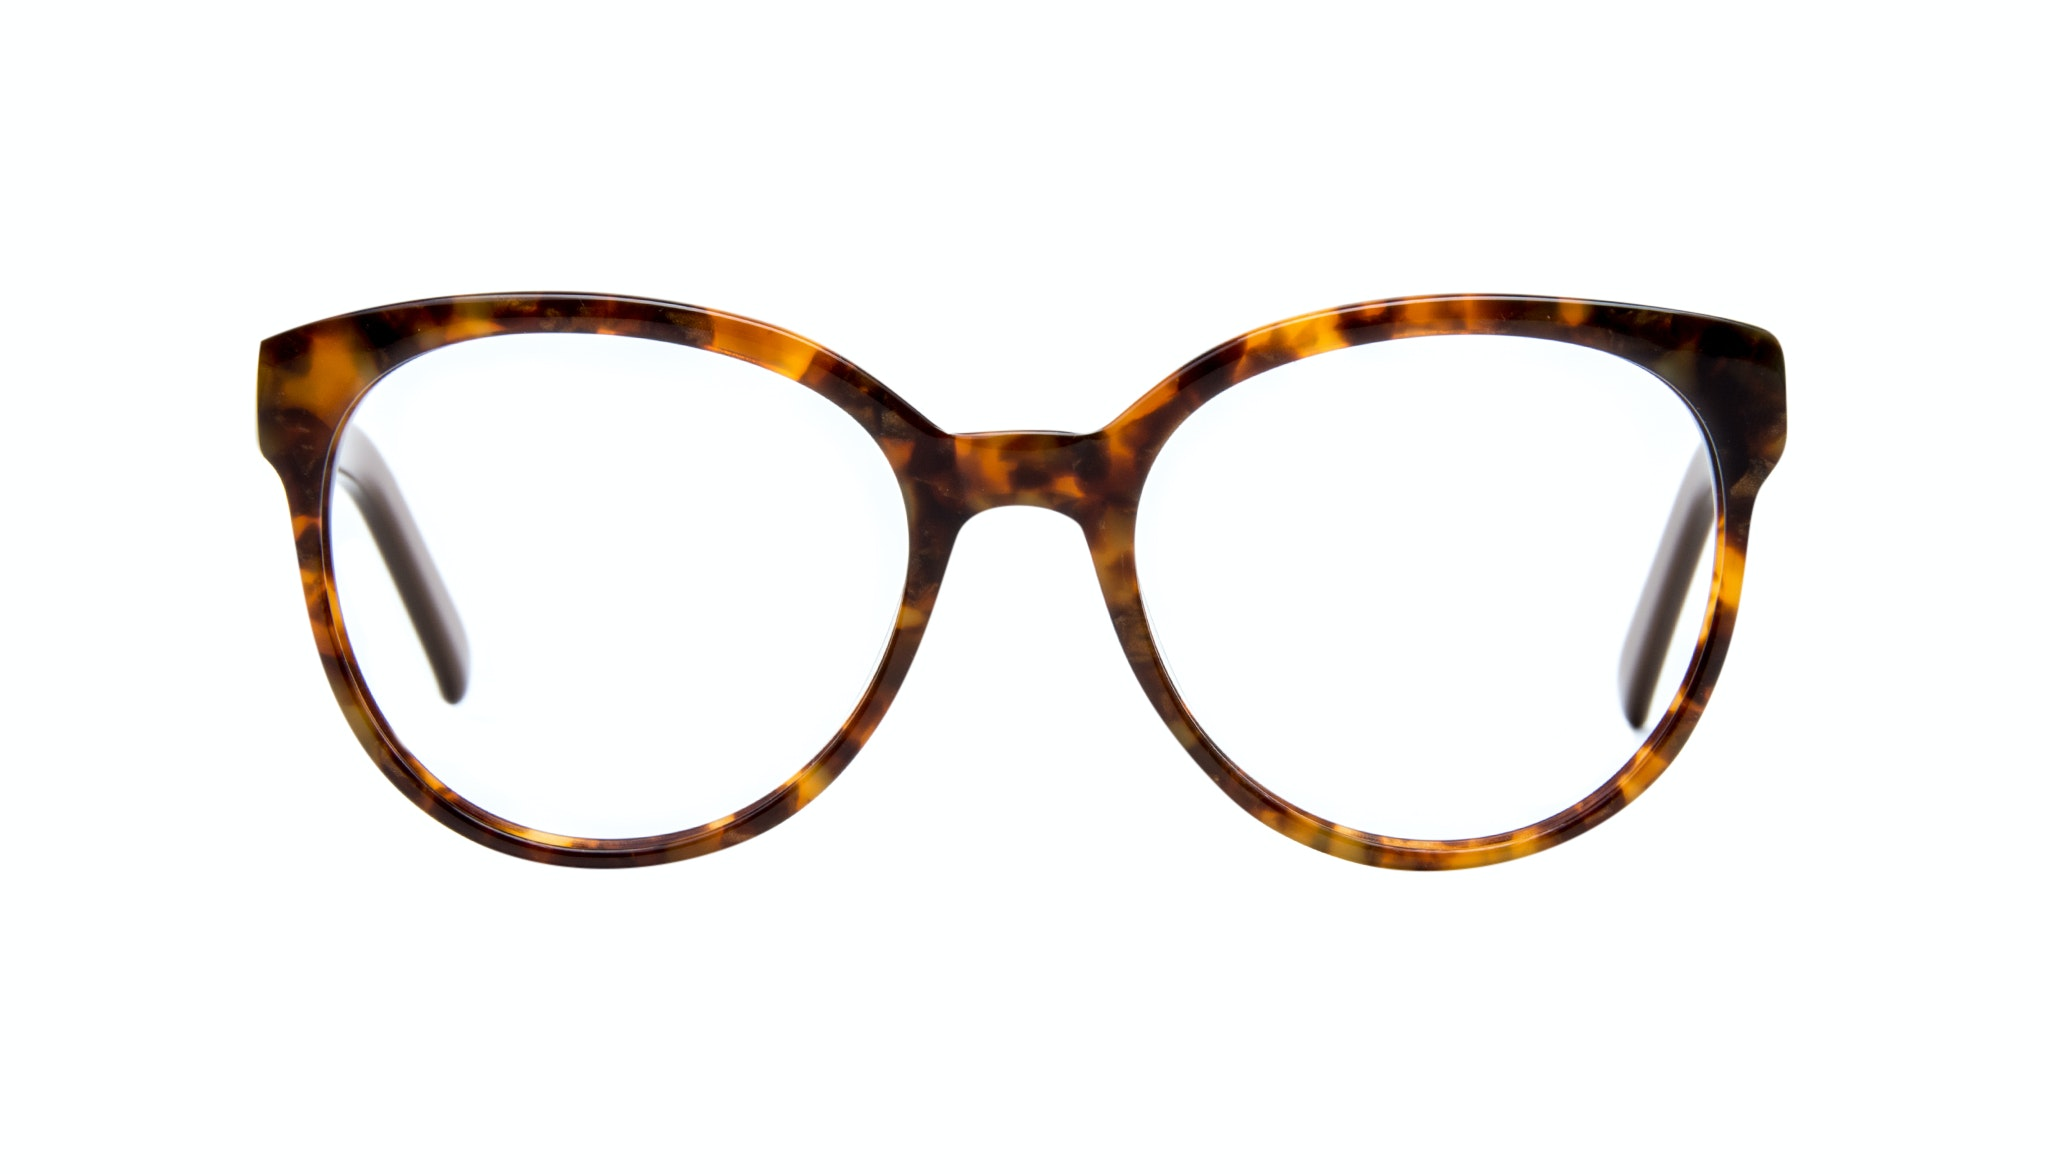 Affordable Fashion Glasses Cat Eye Round Eyeglasses Women Eclipse Tort Gold